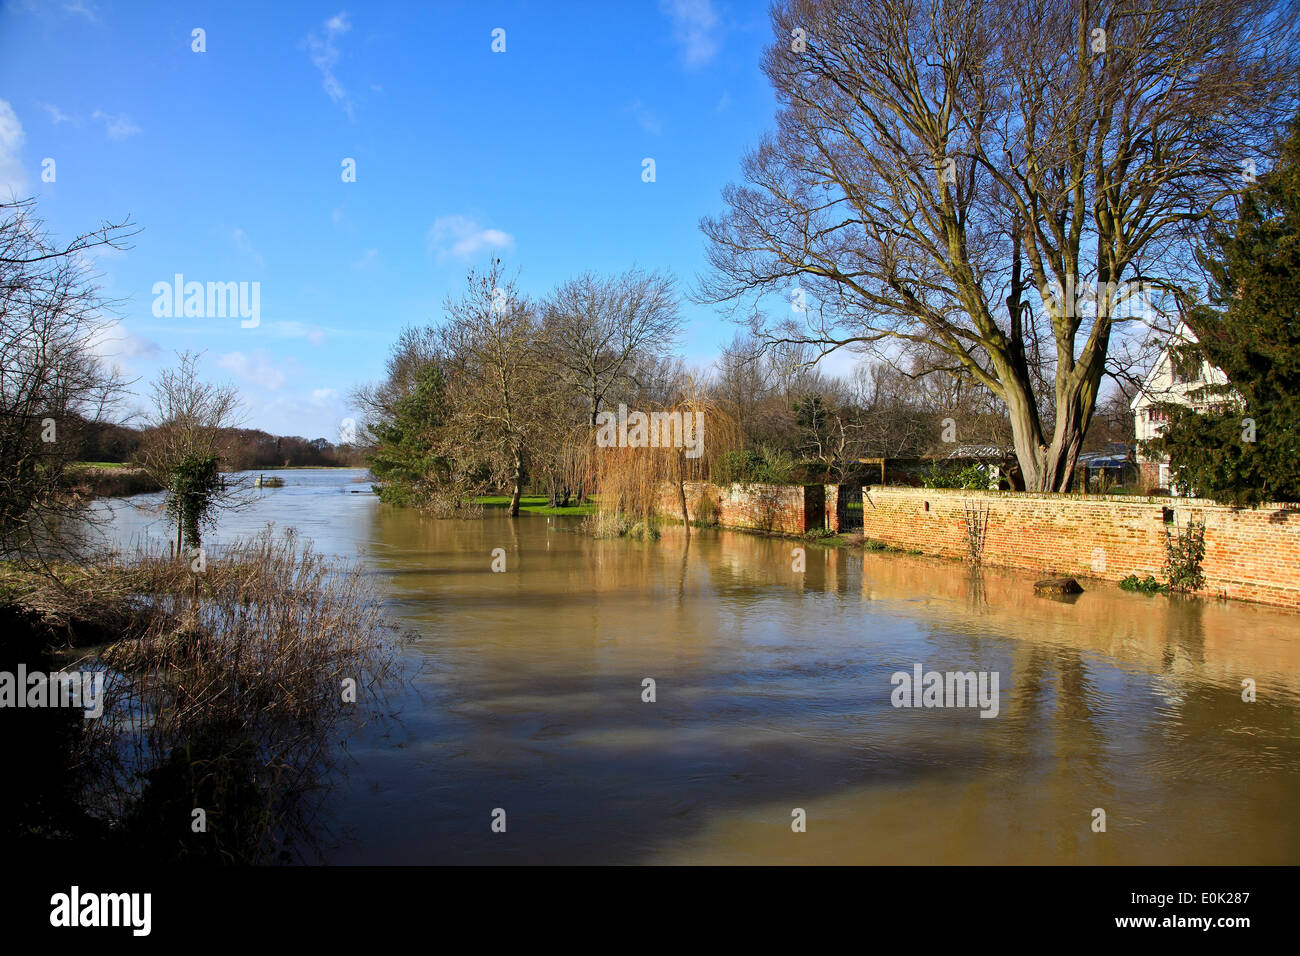 9479. River Stour flooding in Feb '14, Fordwich, Kent, England - Stock Image